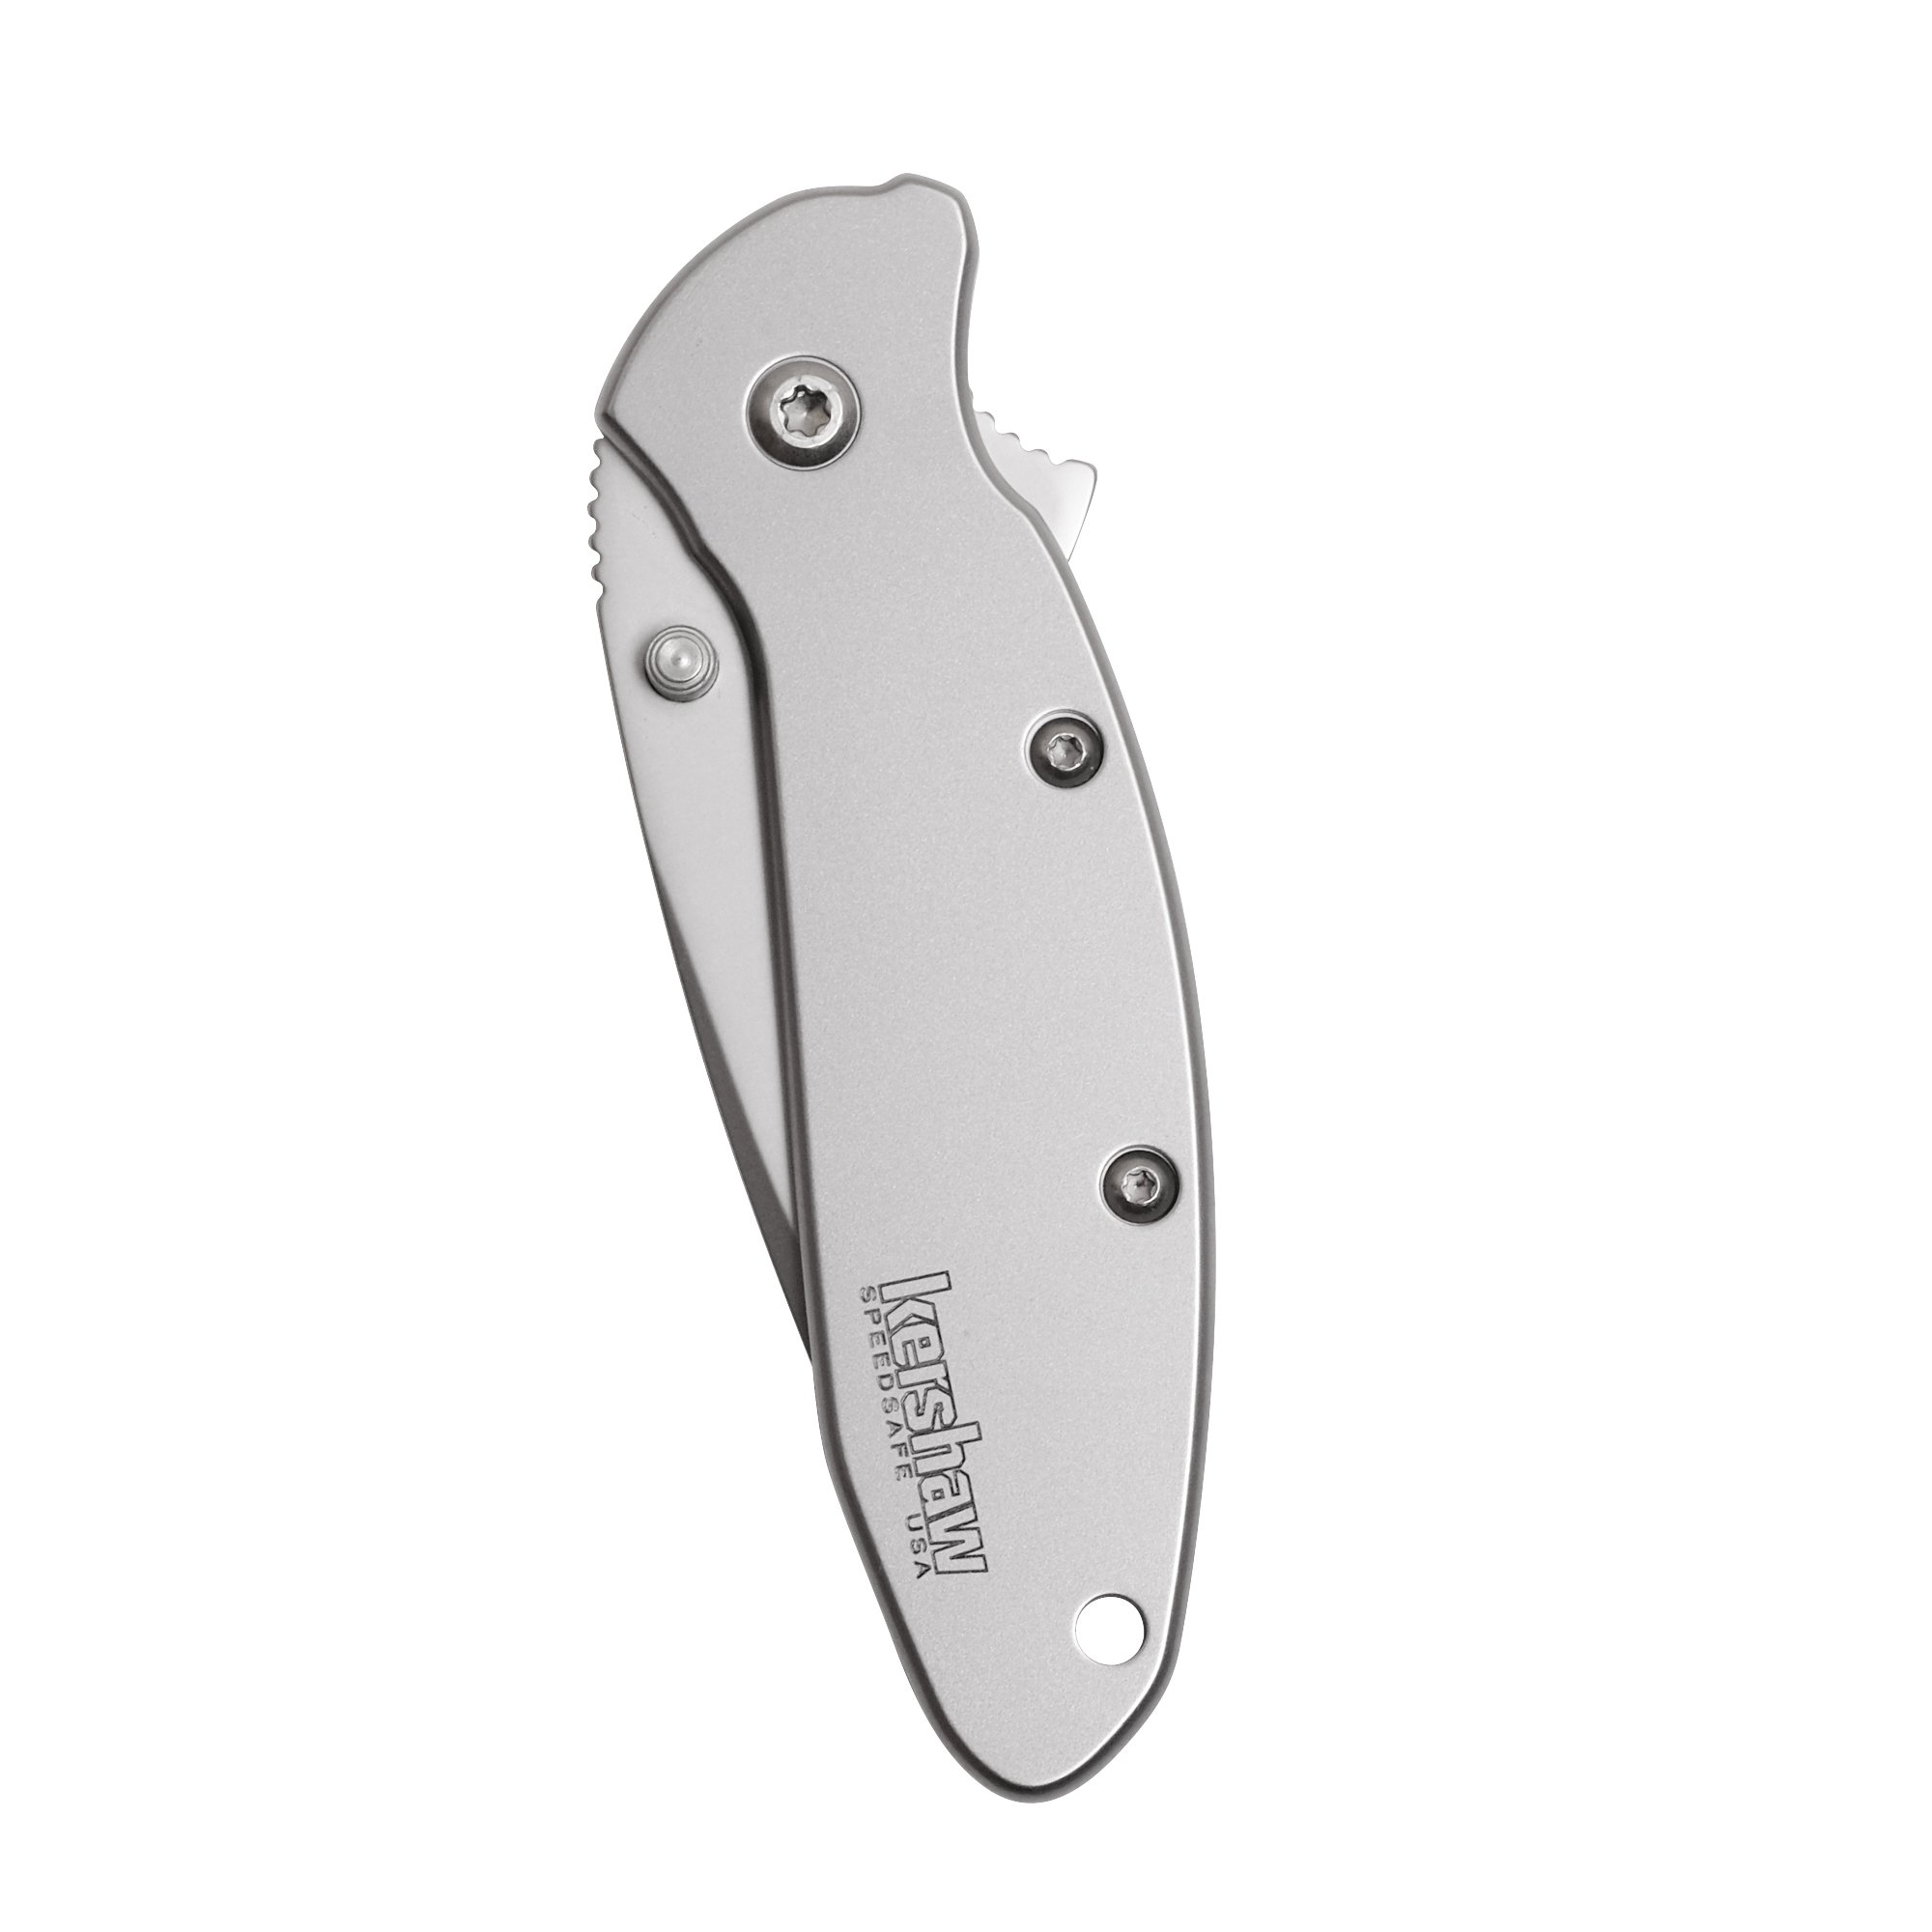 """Kershaw Scallion Pocket Knife (1620FL); 2.4"""" 420HC Stainless Steel Blade and 410 Steel Handle, Featuring SpeedSafe Assisted Opening, Flipper, Lanyard Hole, Secure Frame Lock and Tip Lock; 2.9 OZ. by Kershaw (Image #5)"""